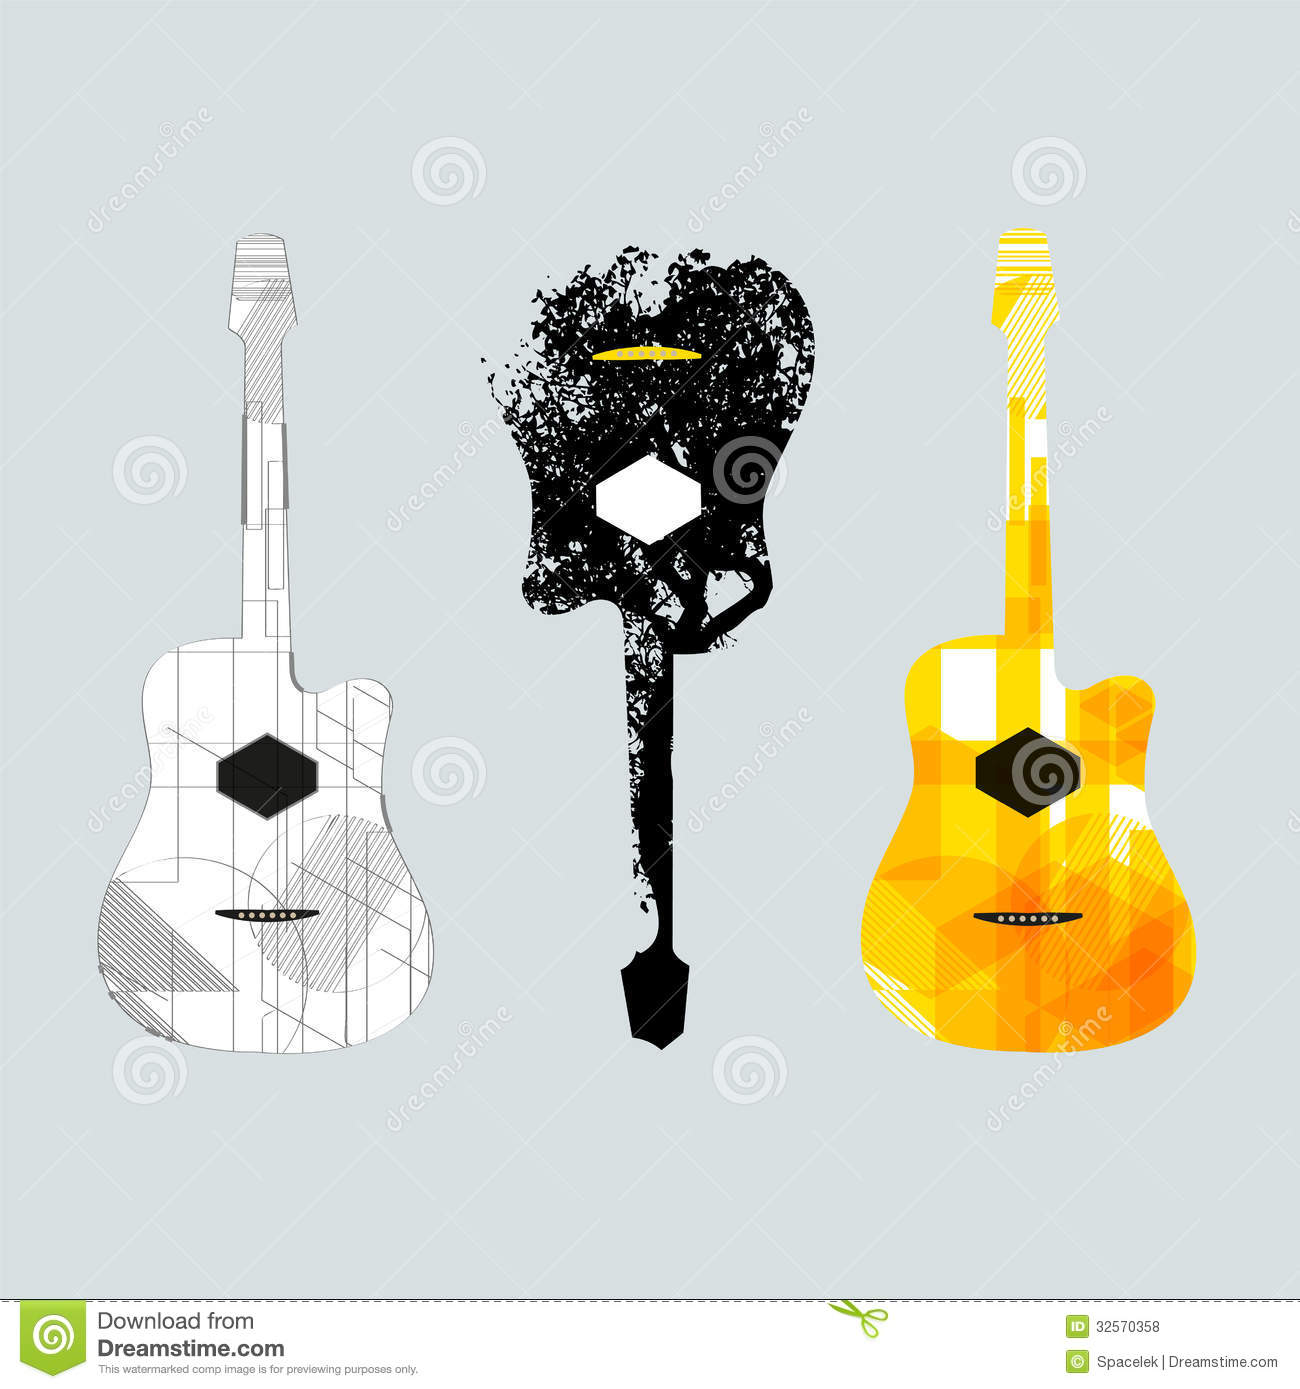 guitar graphic art1 royalty free stock photos image